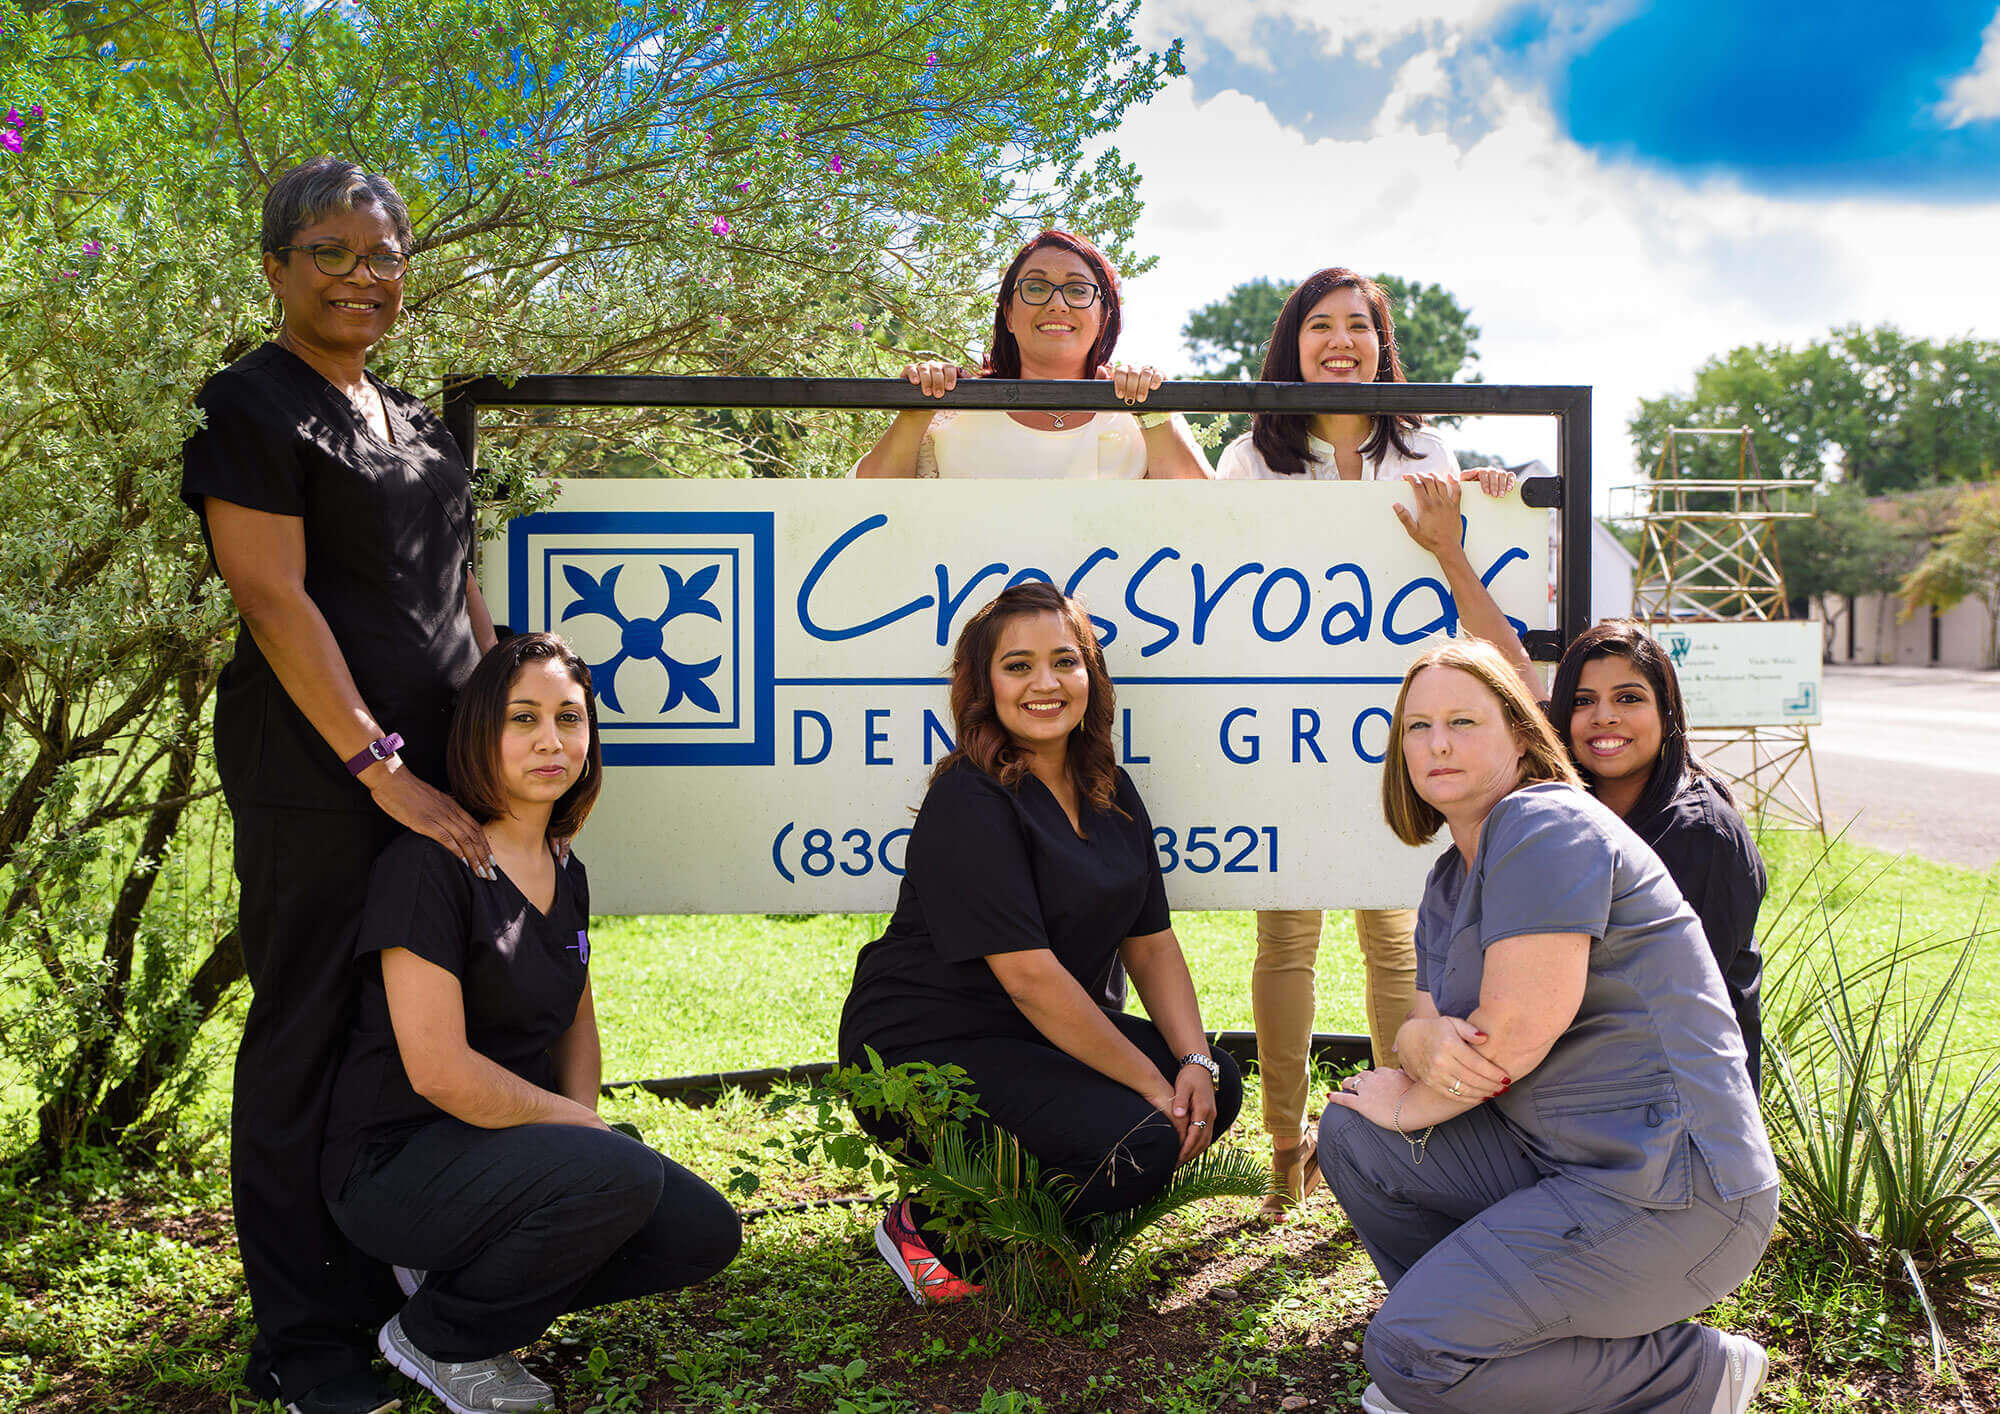 The team members of Crossroads Dental posing for a photo around the big sign on the front lawn